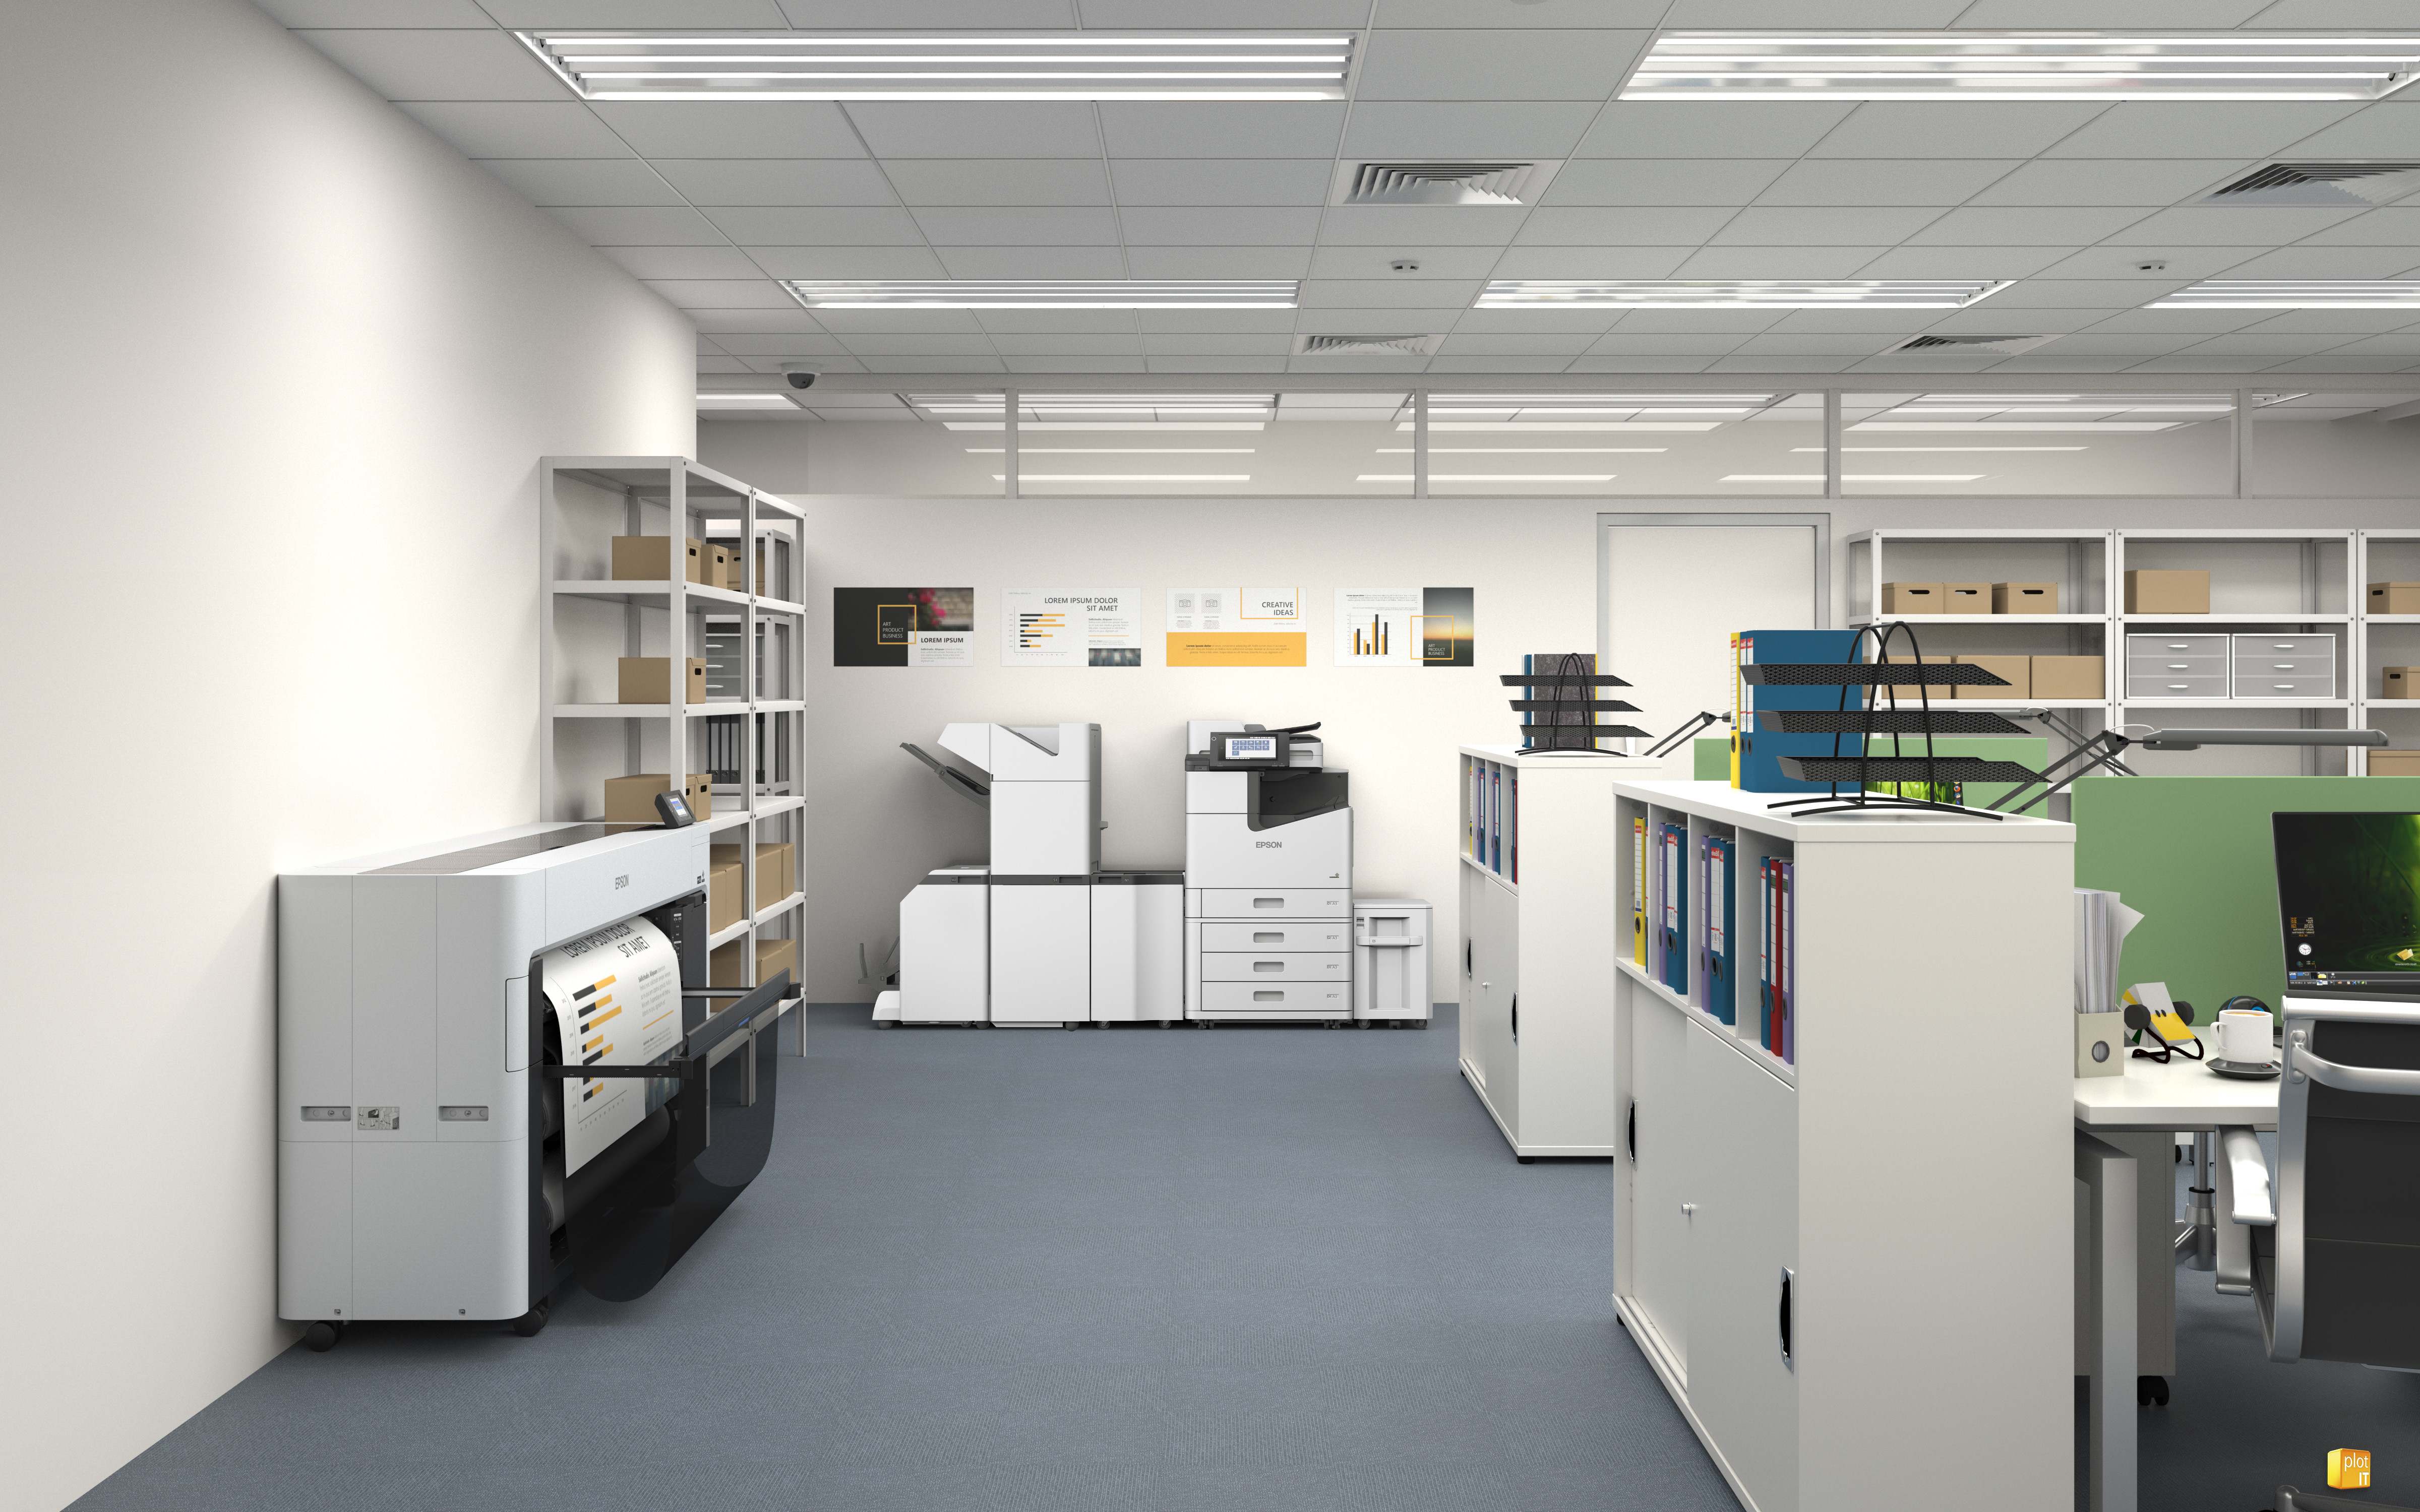 SC-P8500D OFFICE SCENE WITH BASKET